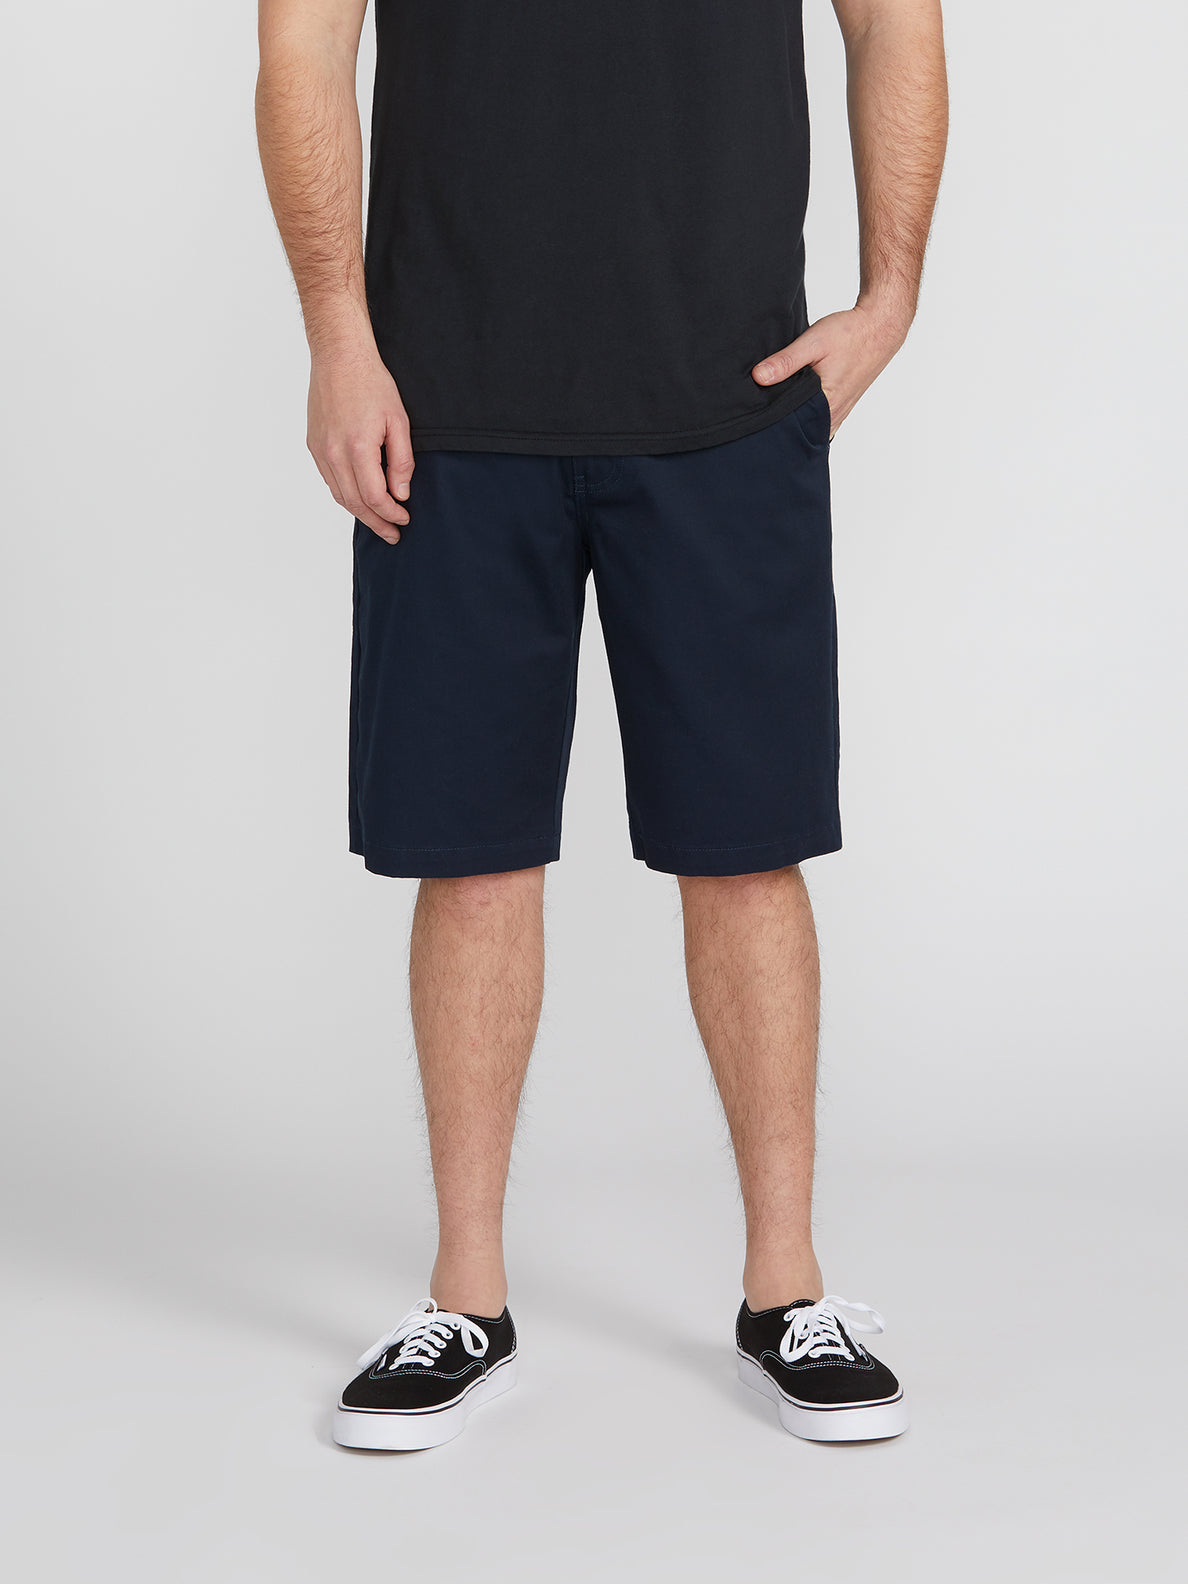 VMONTY SHORT 22 - DARK NAVY (A09313S0_DNV) [F]